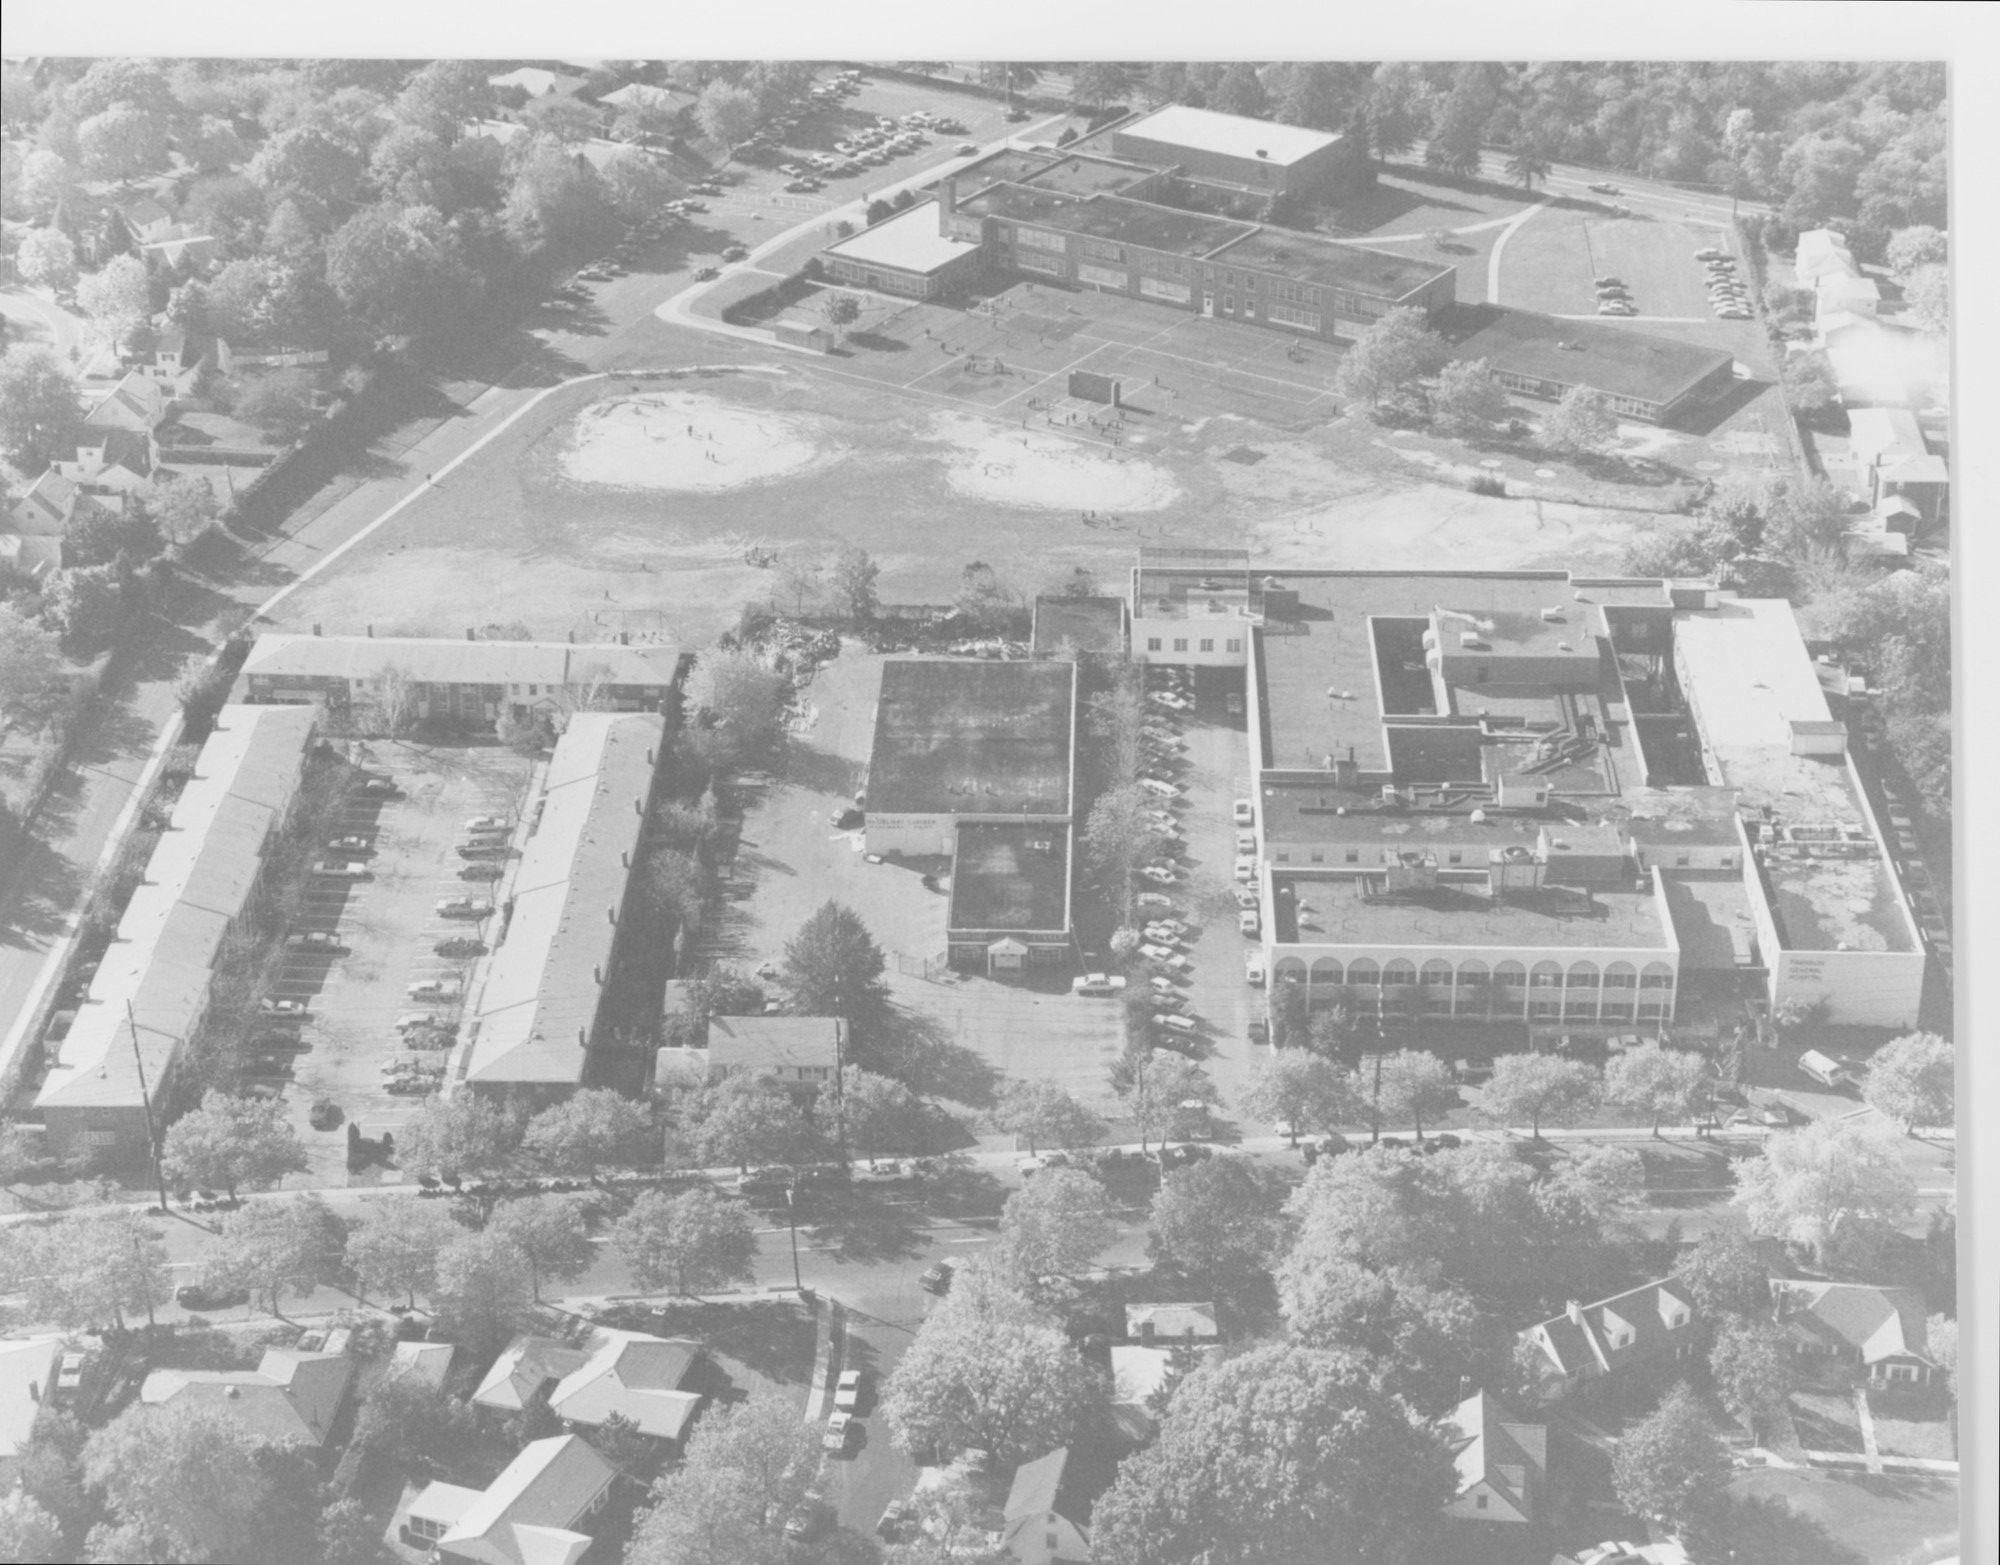 Franklin Hospital, at right, as it appeared in the early 1980s. The lumber yard, to the left, was bought by the hospital and torn down to add a nursing home. The hospital also once tried to purchase the James A. Dever School, top of photo, and surrounding property in the rear so it could expand.